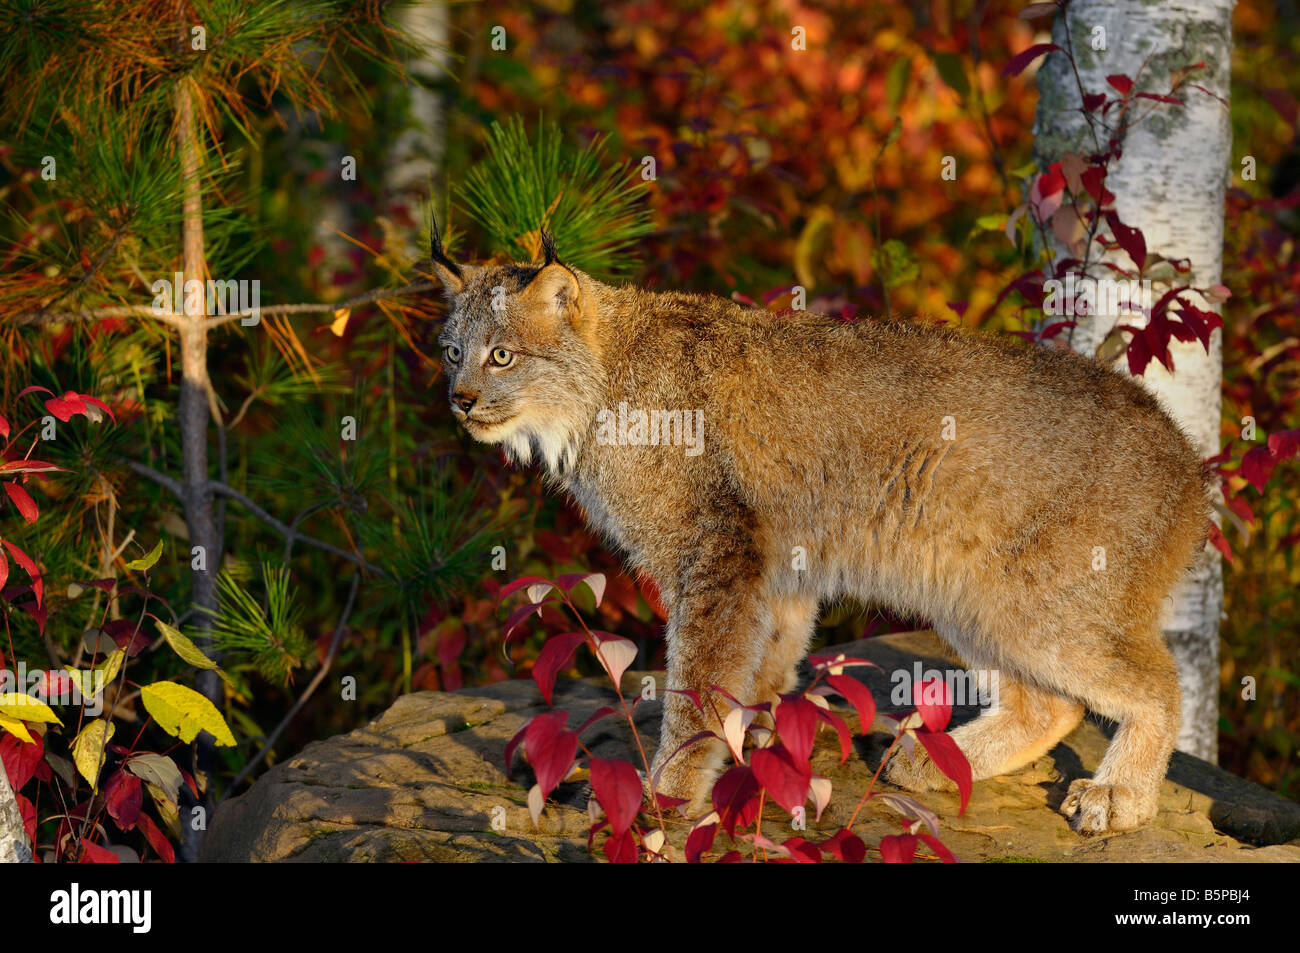 Canadian Lynx standing on a rock in a colorful birch forest in Autumn at sunrise - Stock Image